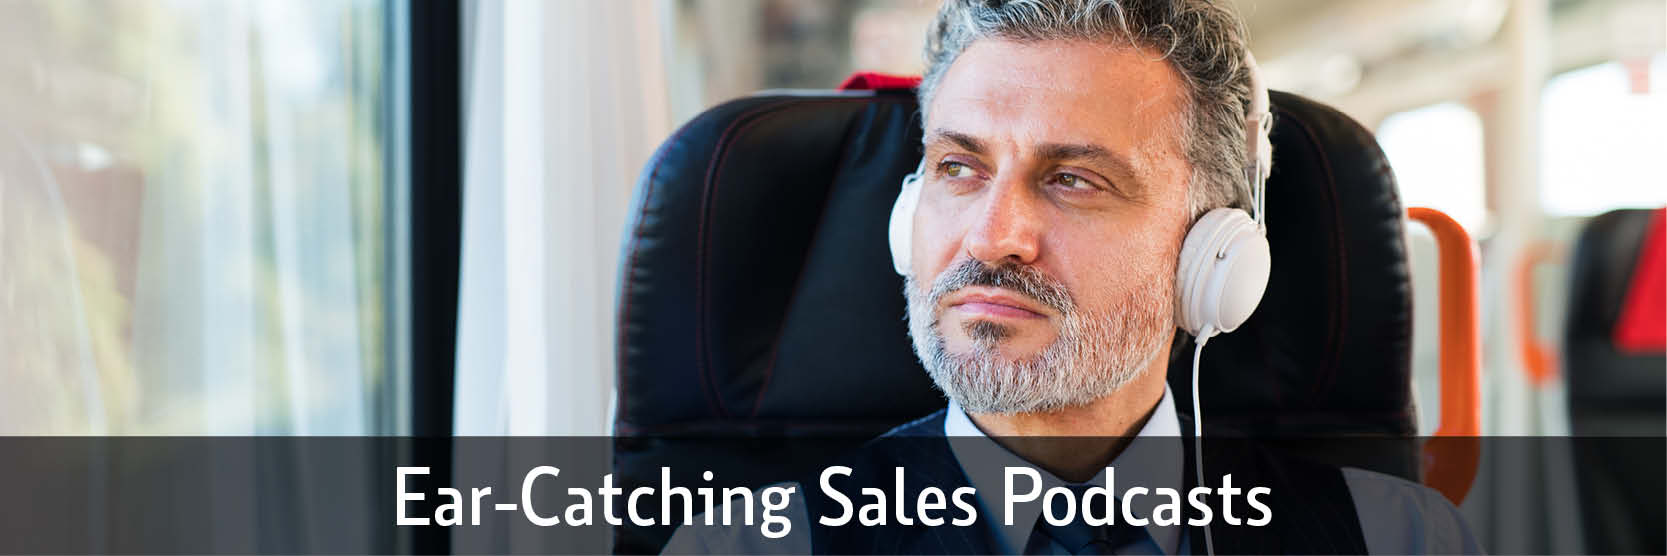 man listening to a sales podcast while riding train